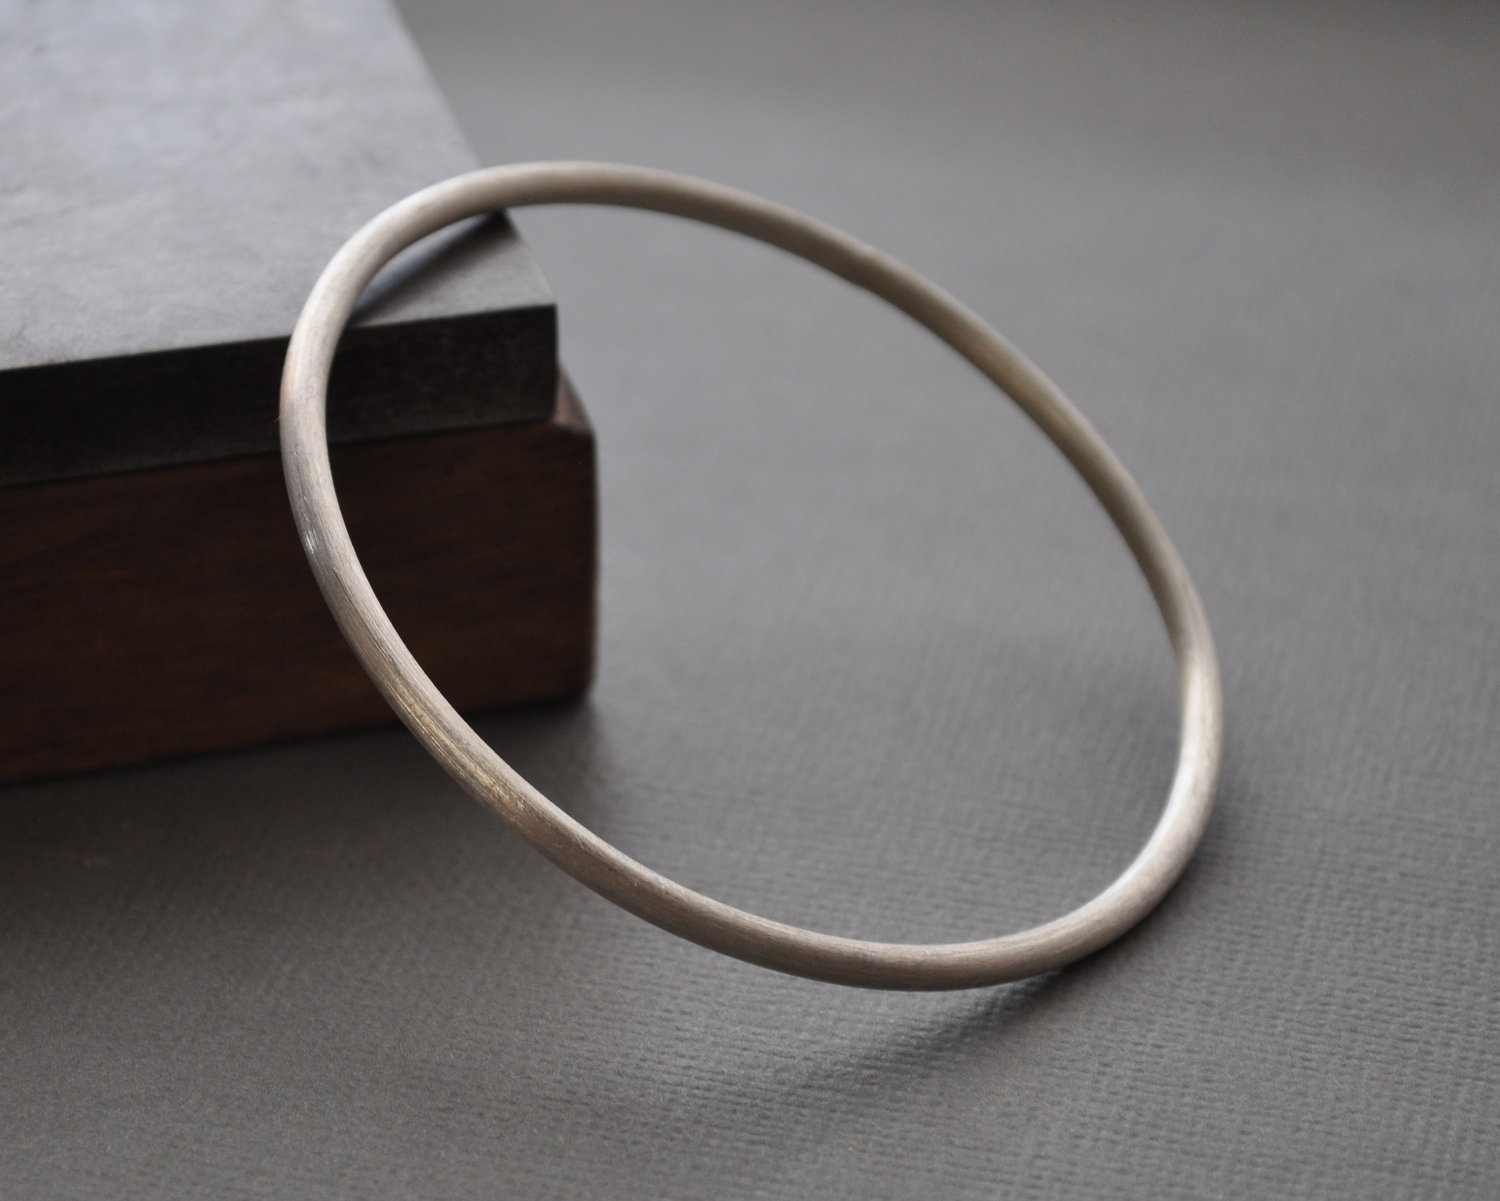 August 2014 Special – The Heavy Sterling Silver Bangle is $30 off!